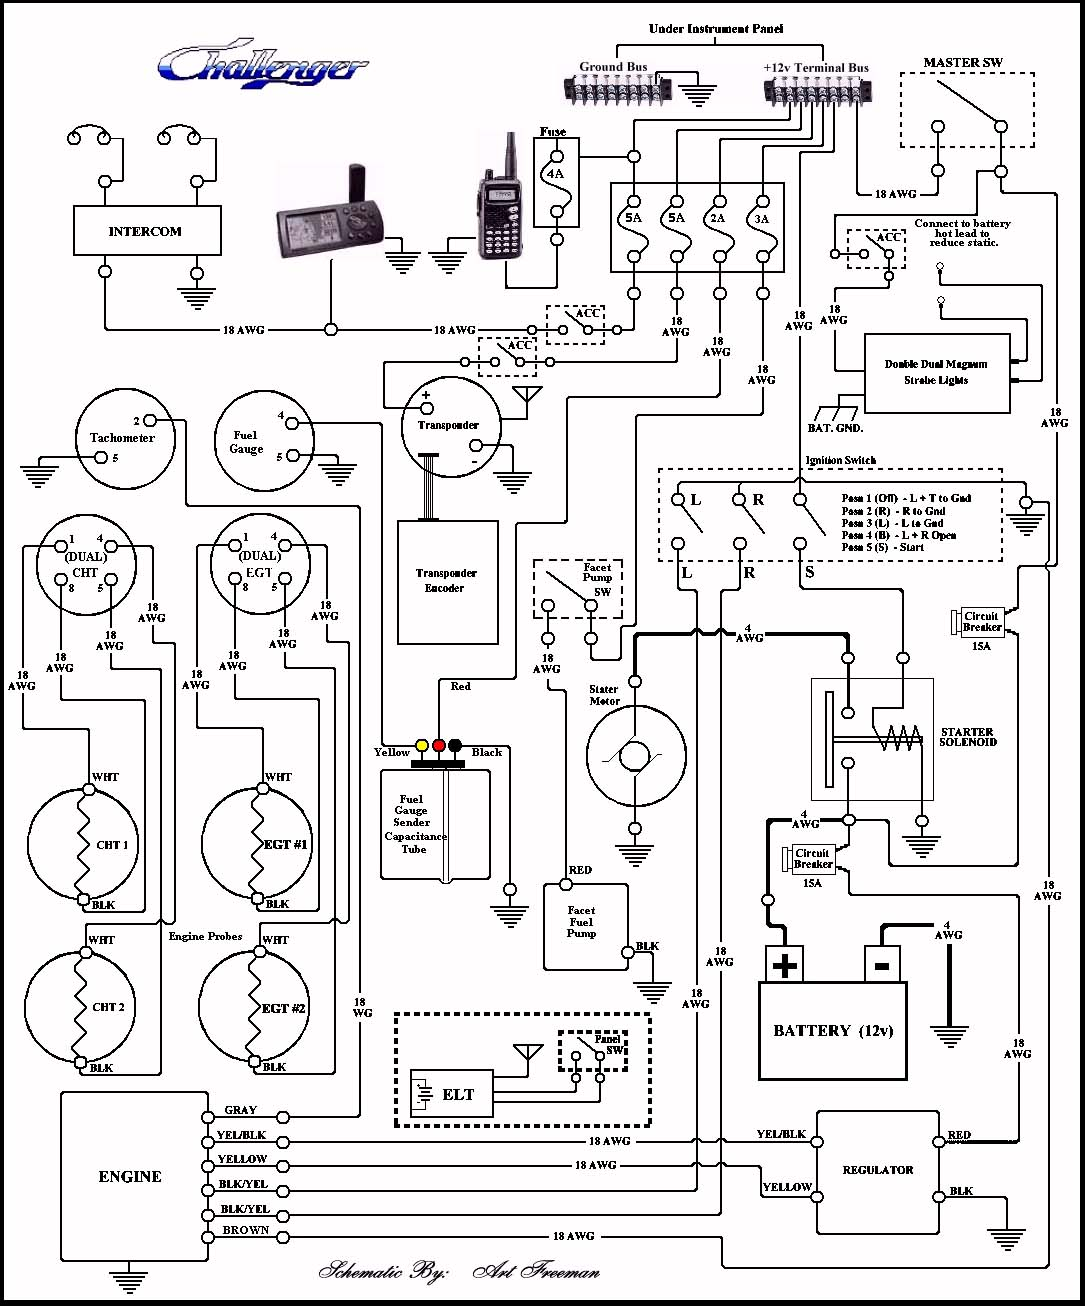 Aircraft wiring diagram rv free download wiring diagrams schematics basic wiring of fuselage instruments and power source for looper wiring diagram rv solar wiring cheapraybanclubmaster Choice Image